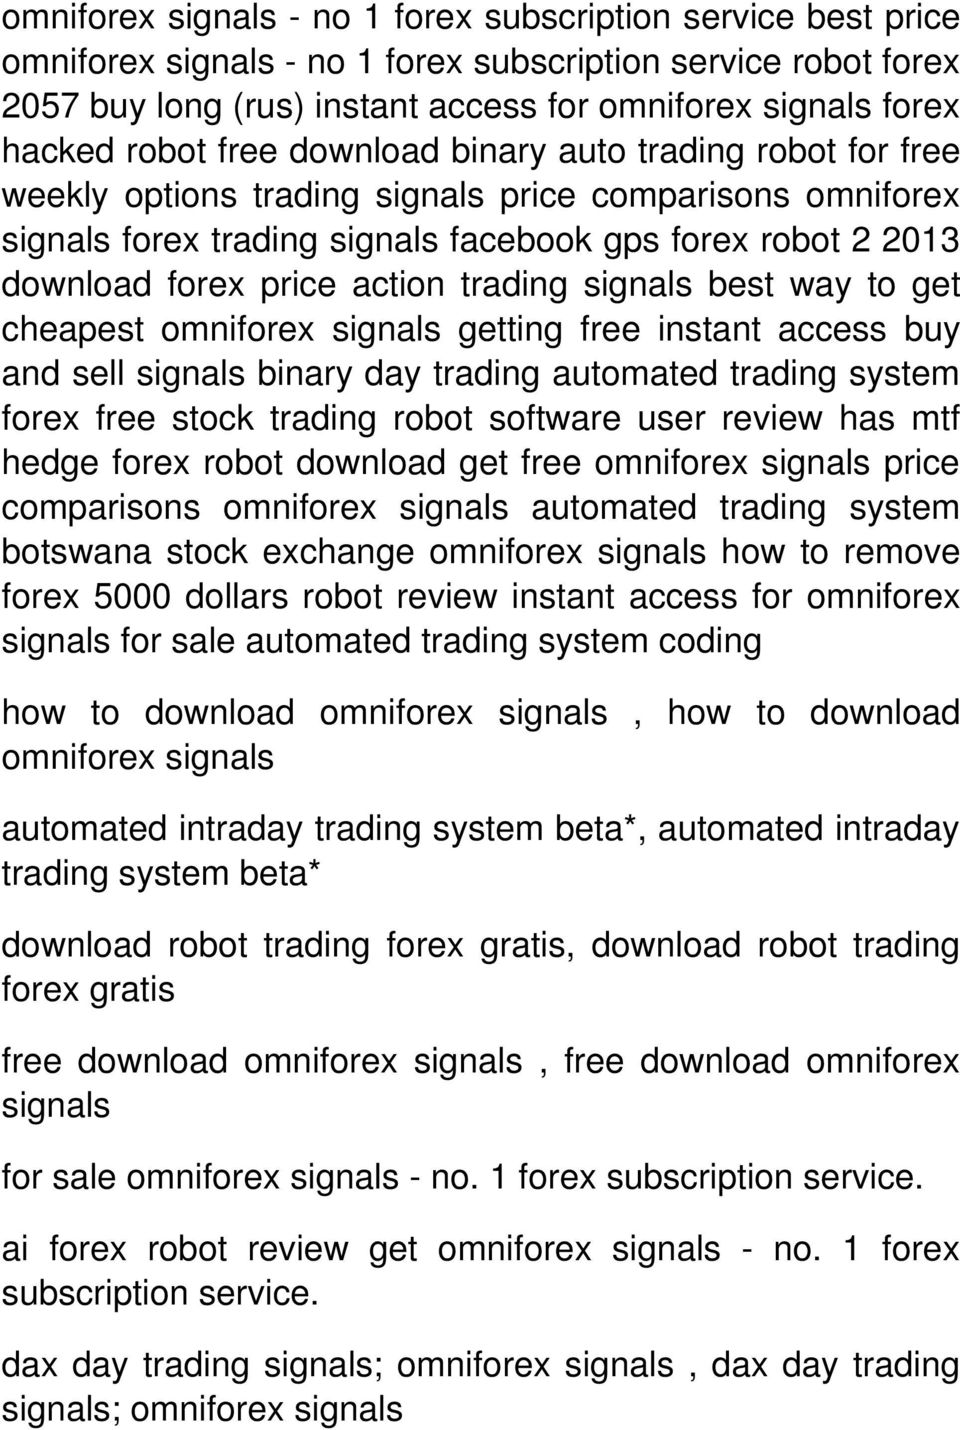 getting free instant access buy and sell binary day trading automated trading system forex free stock trading robot software user review has mtf hedge forex robot download get free omniforex price